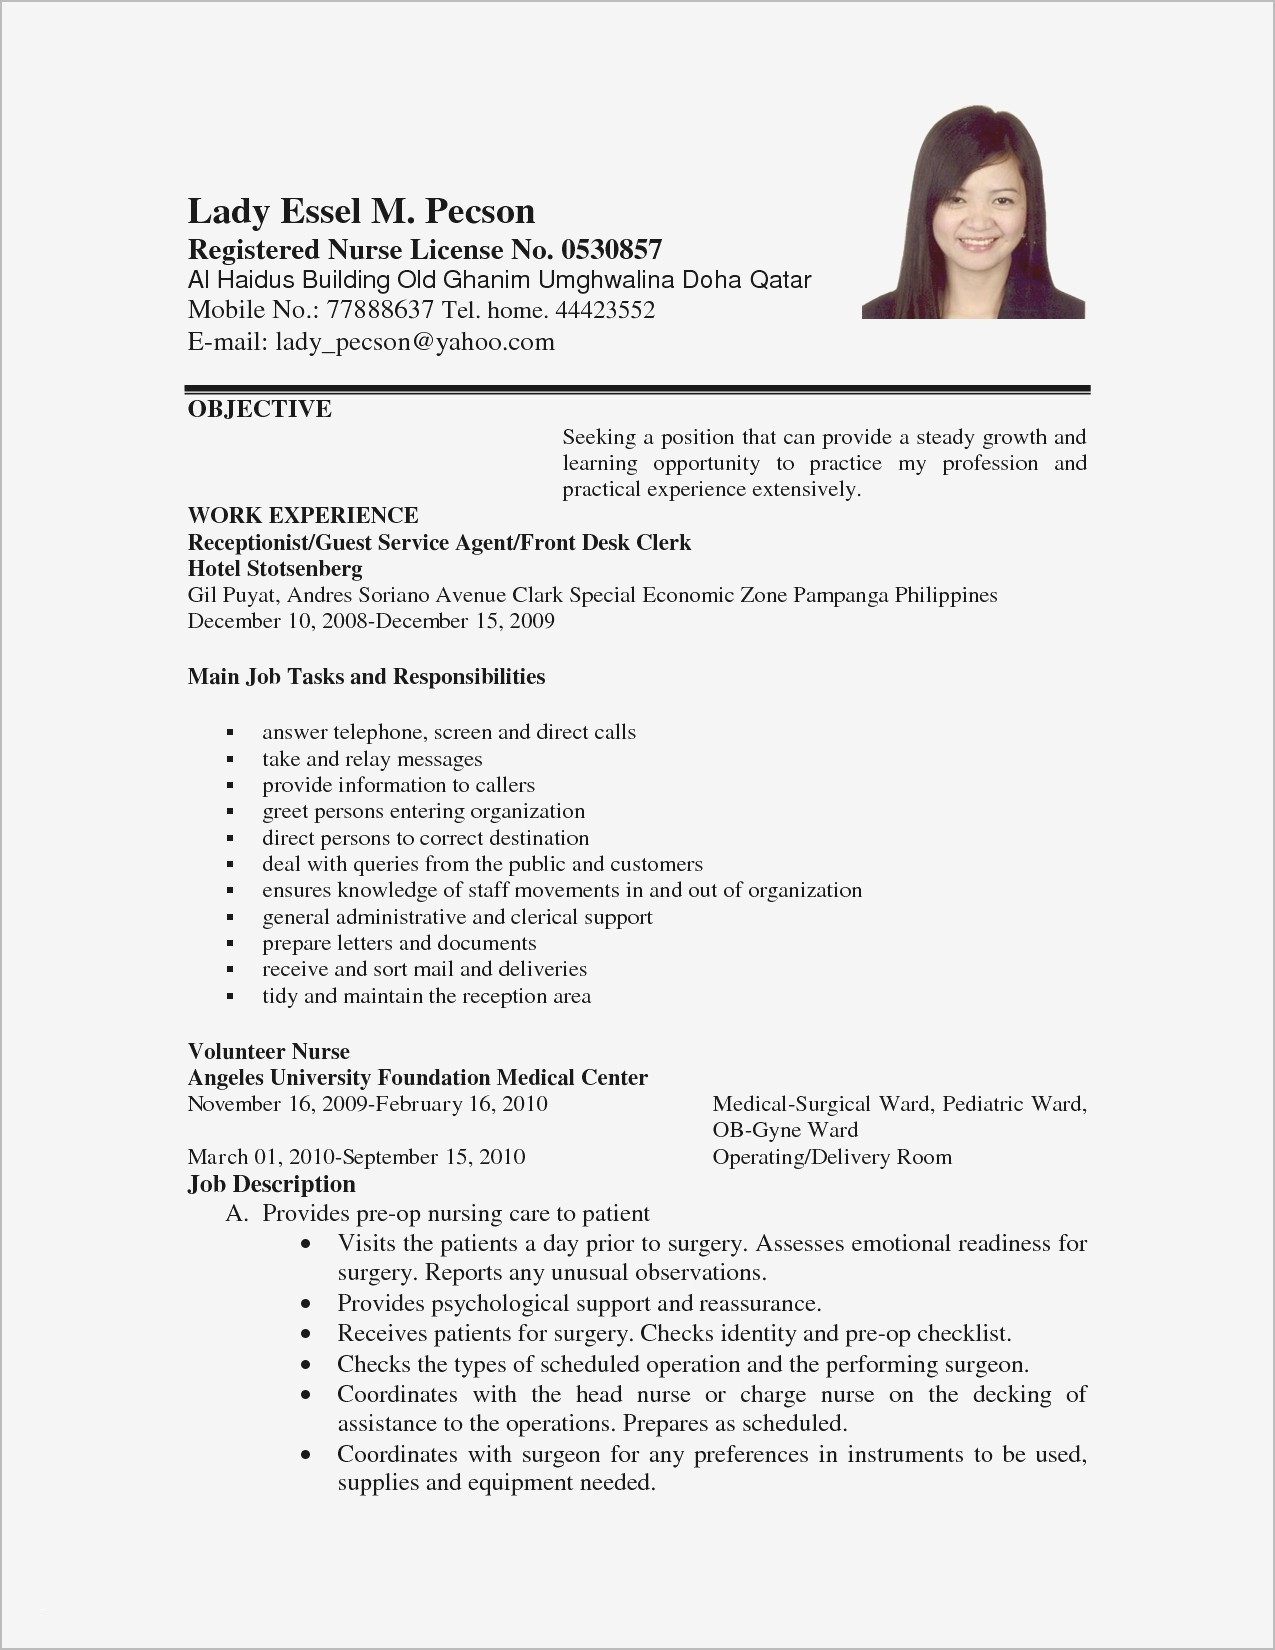 Customer Service Representative Skills Resume - Puter Skills Resume Lovely Awesome Research Skills Resume New